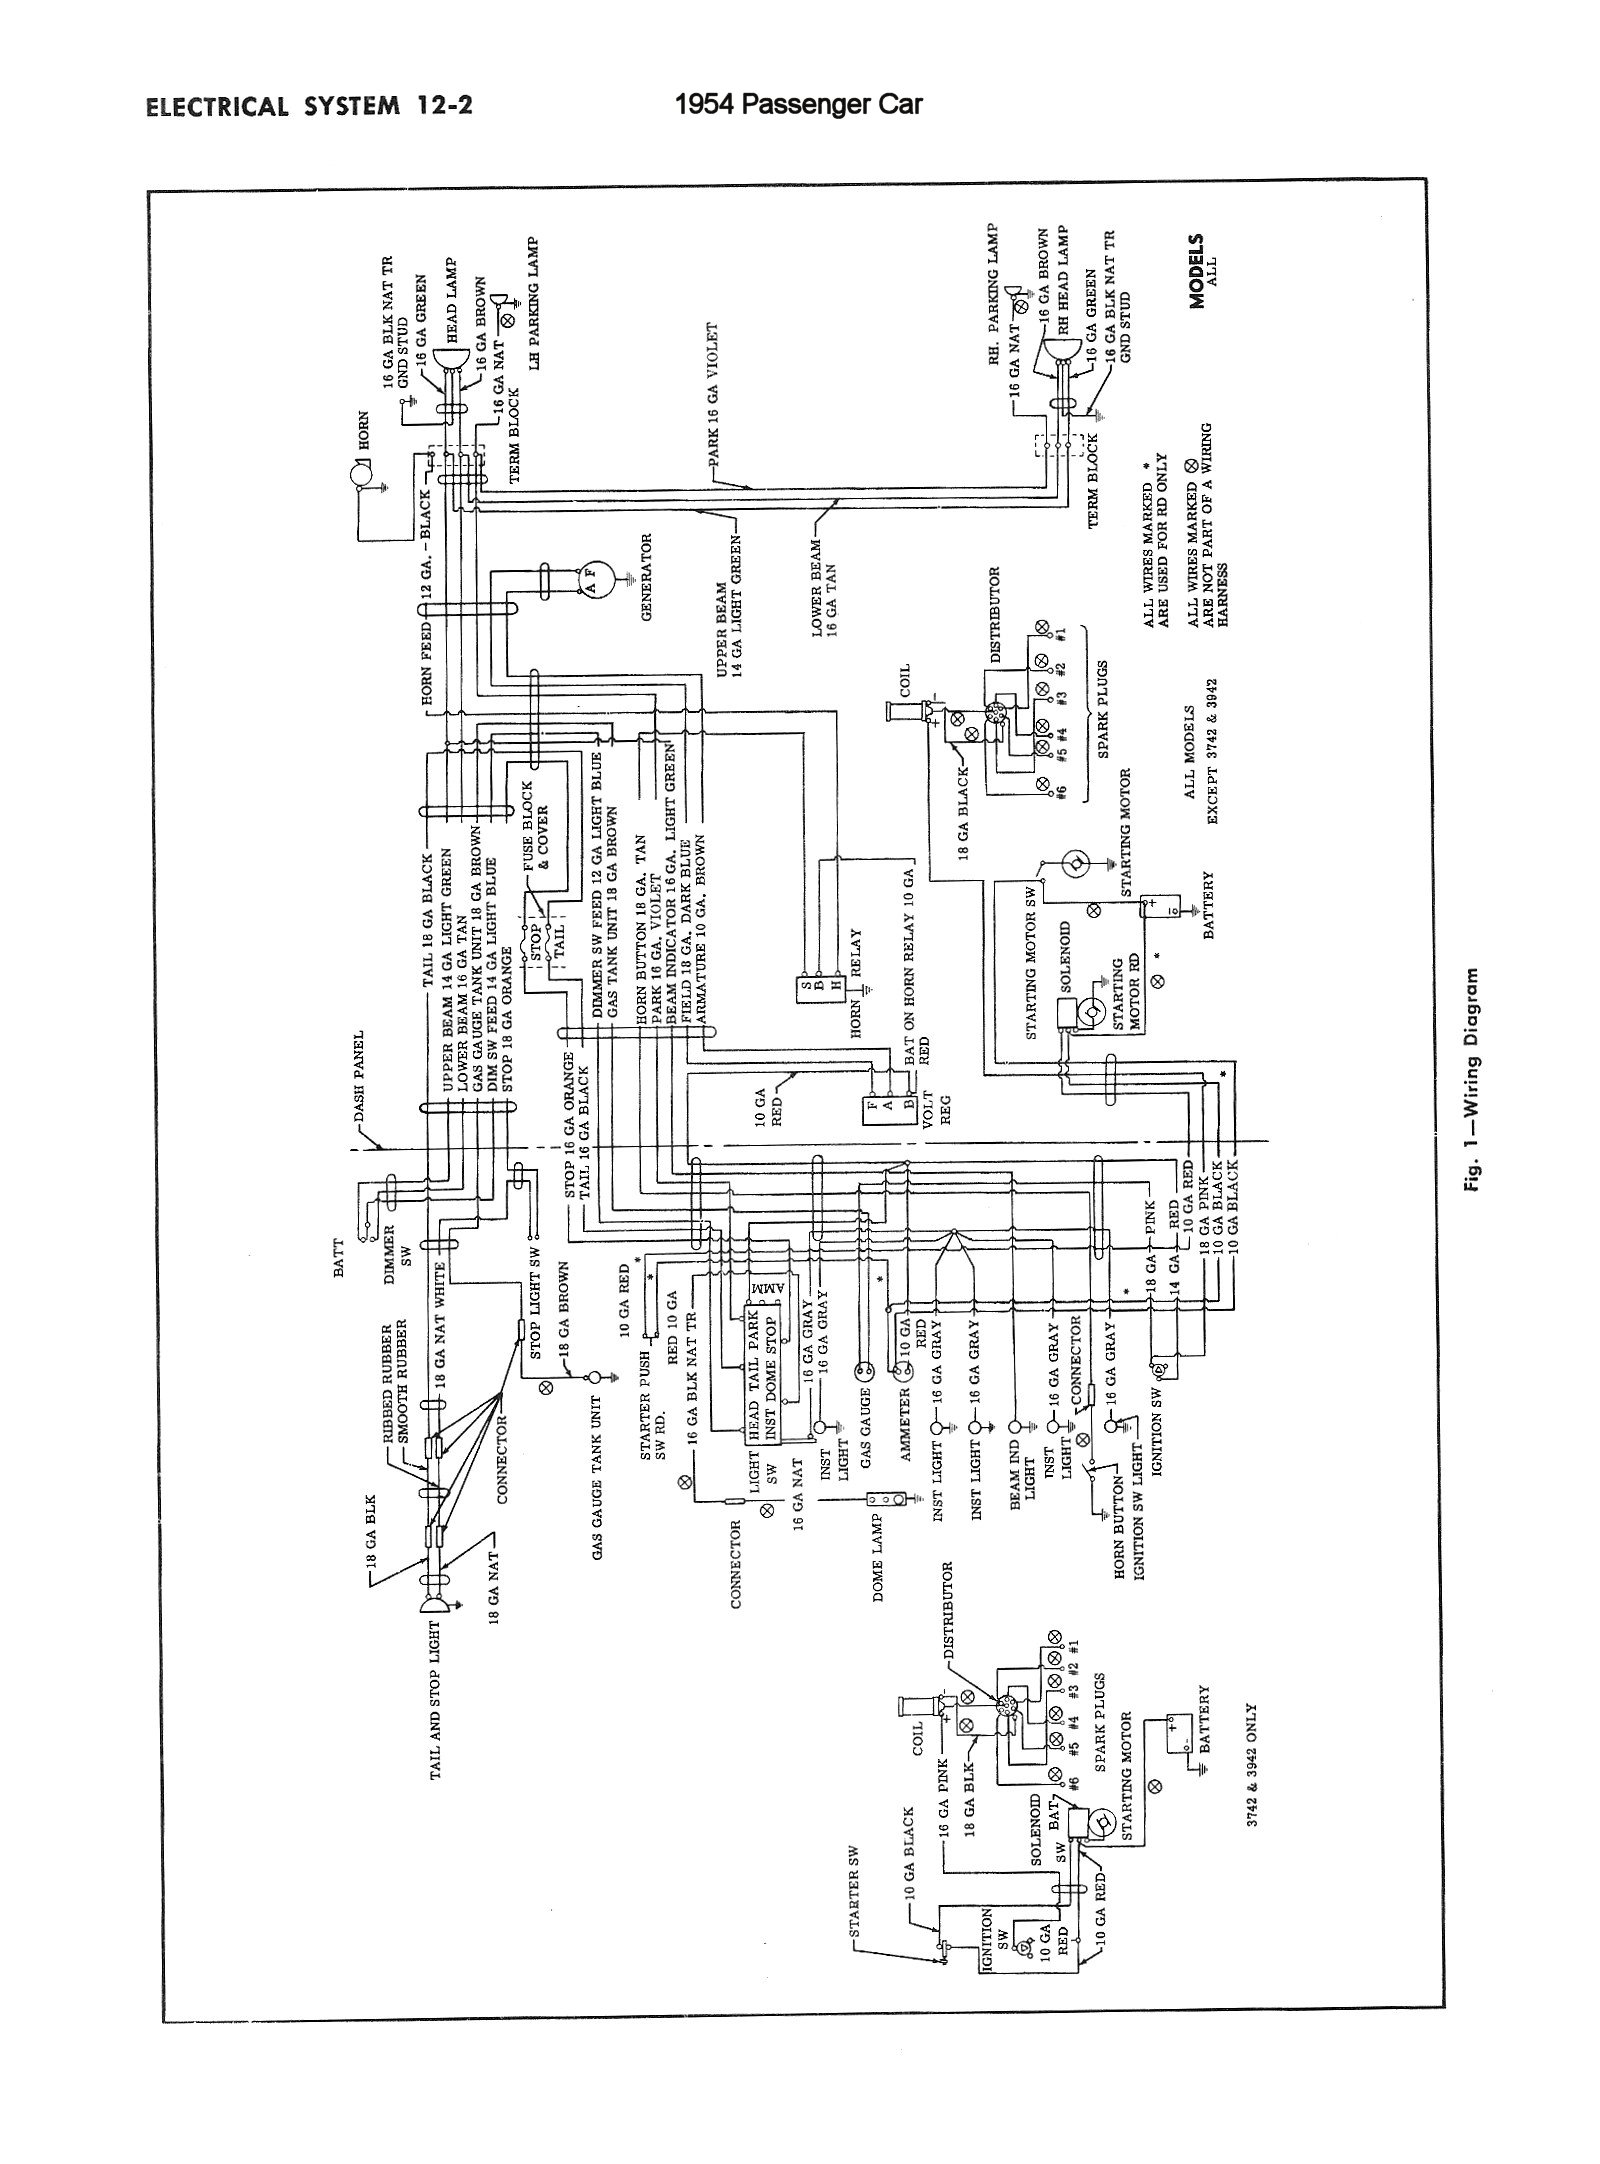 54ctsm1202 chevy wiring diagrams 1953 chevy truck headlight switch wiring diagram at et-consult.org